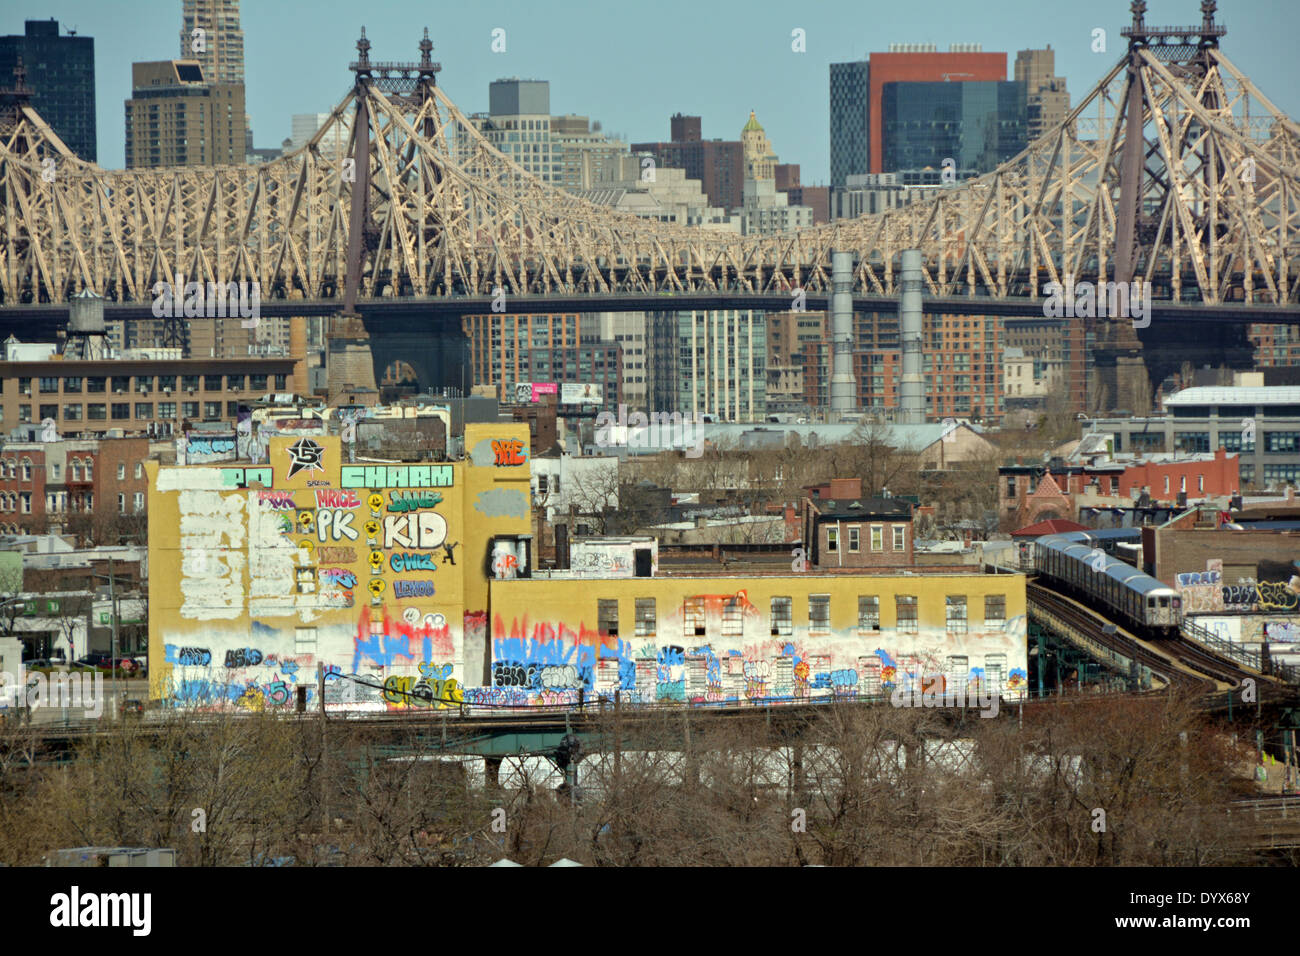 5 Pointz graffiti museum with the 59th Street Bridge and Manhattan skyline in the background and the subway in the foreground. - Stock Image